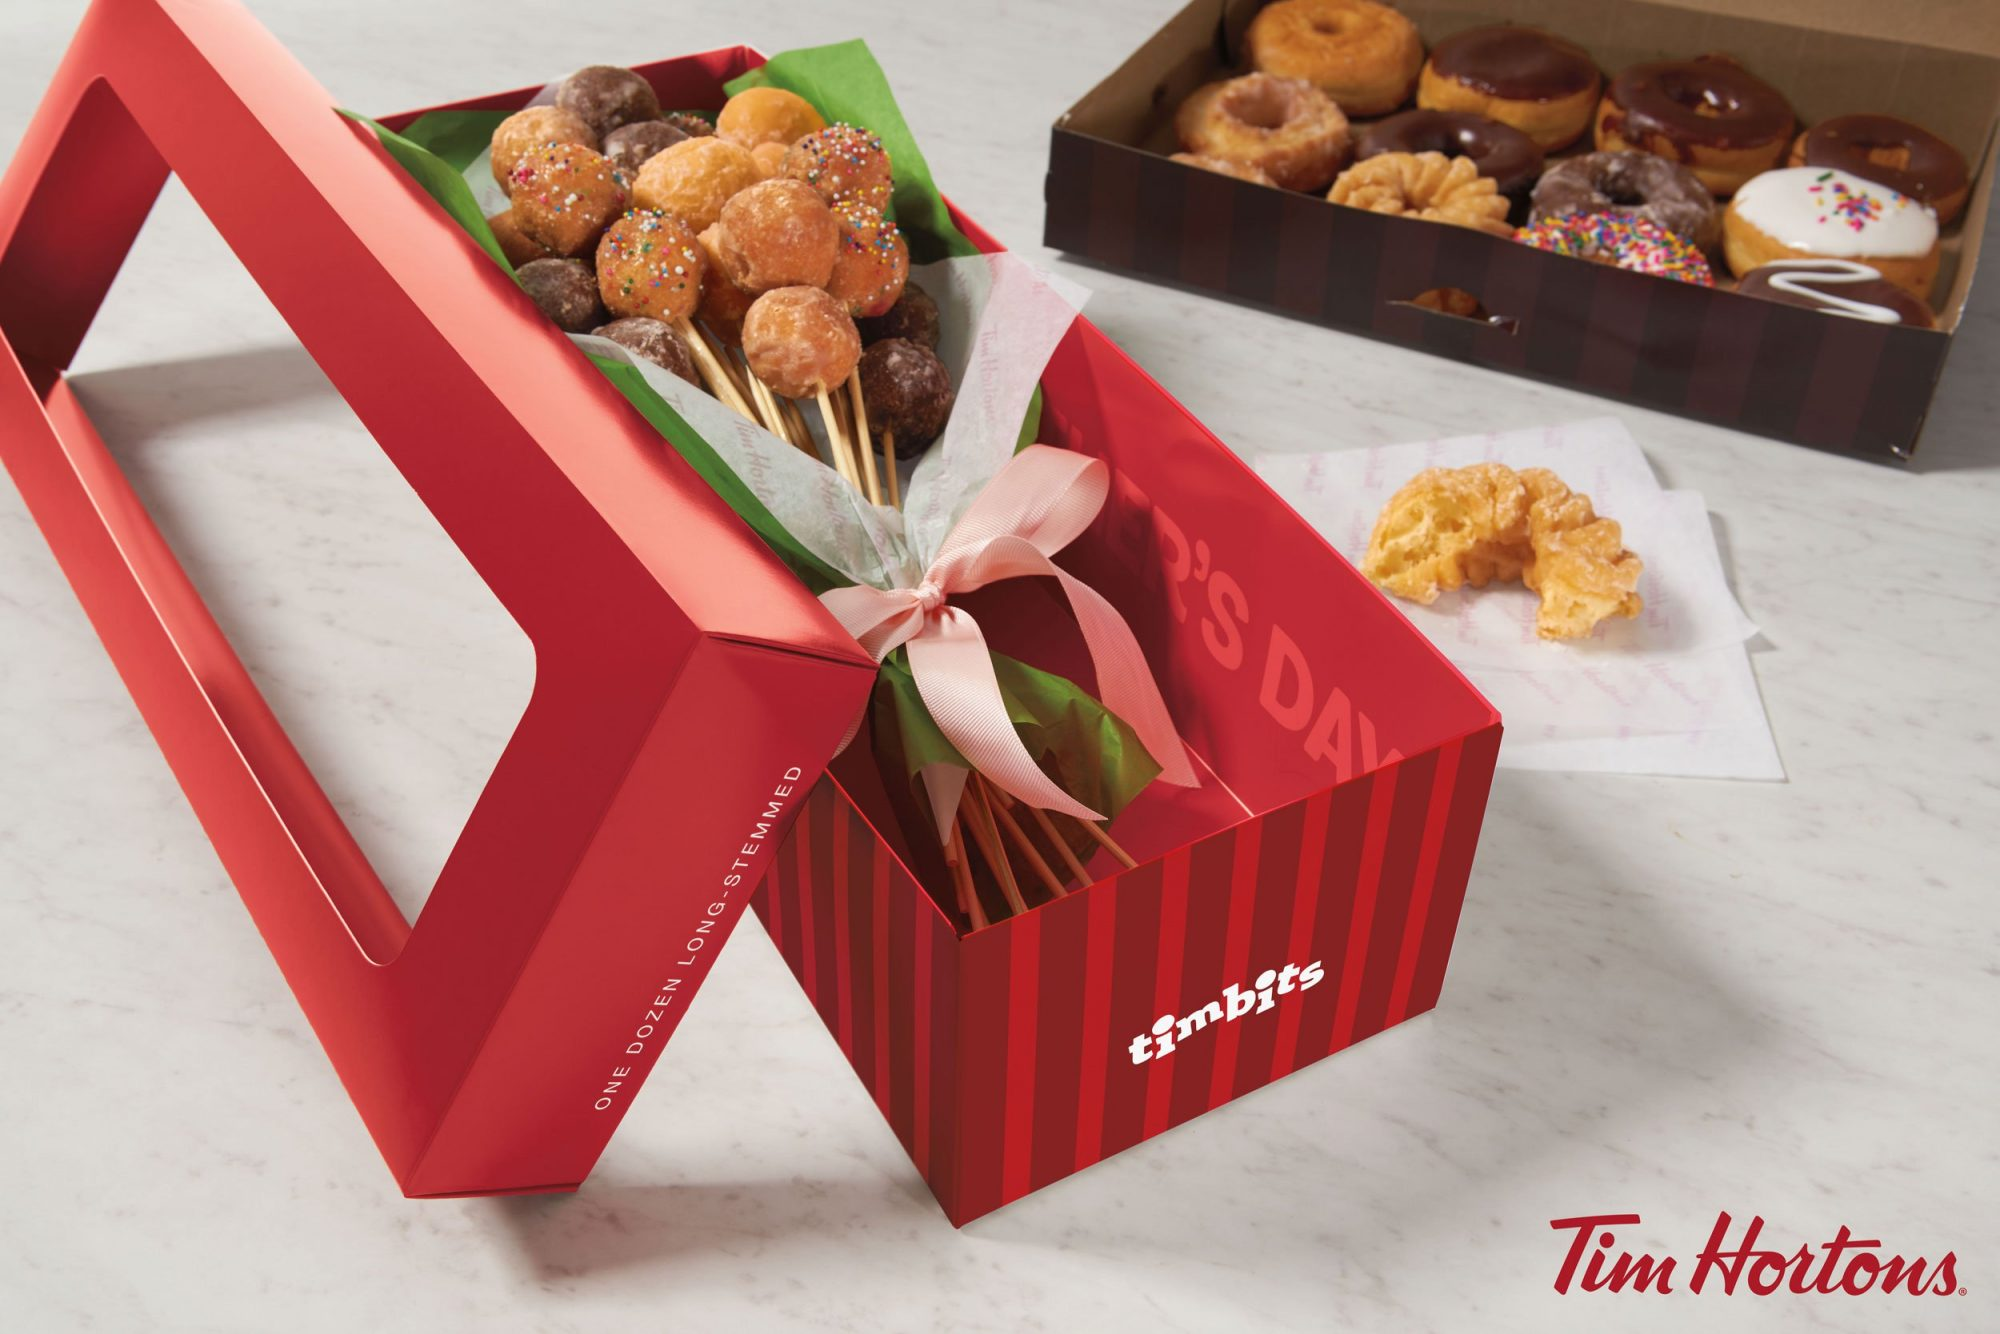 EC: Tim Hortons Has a Doughnut Bouquet for Mother's Day